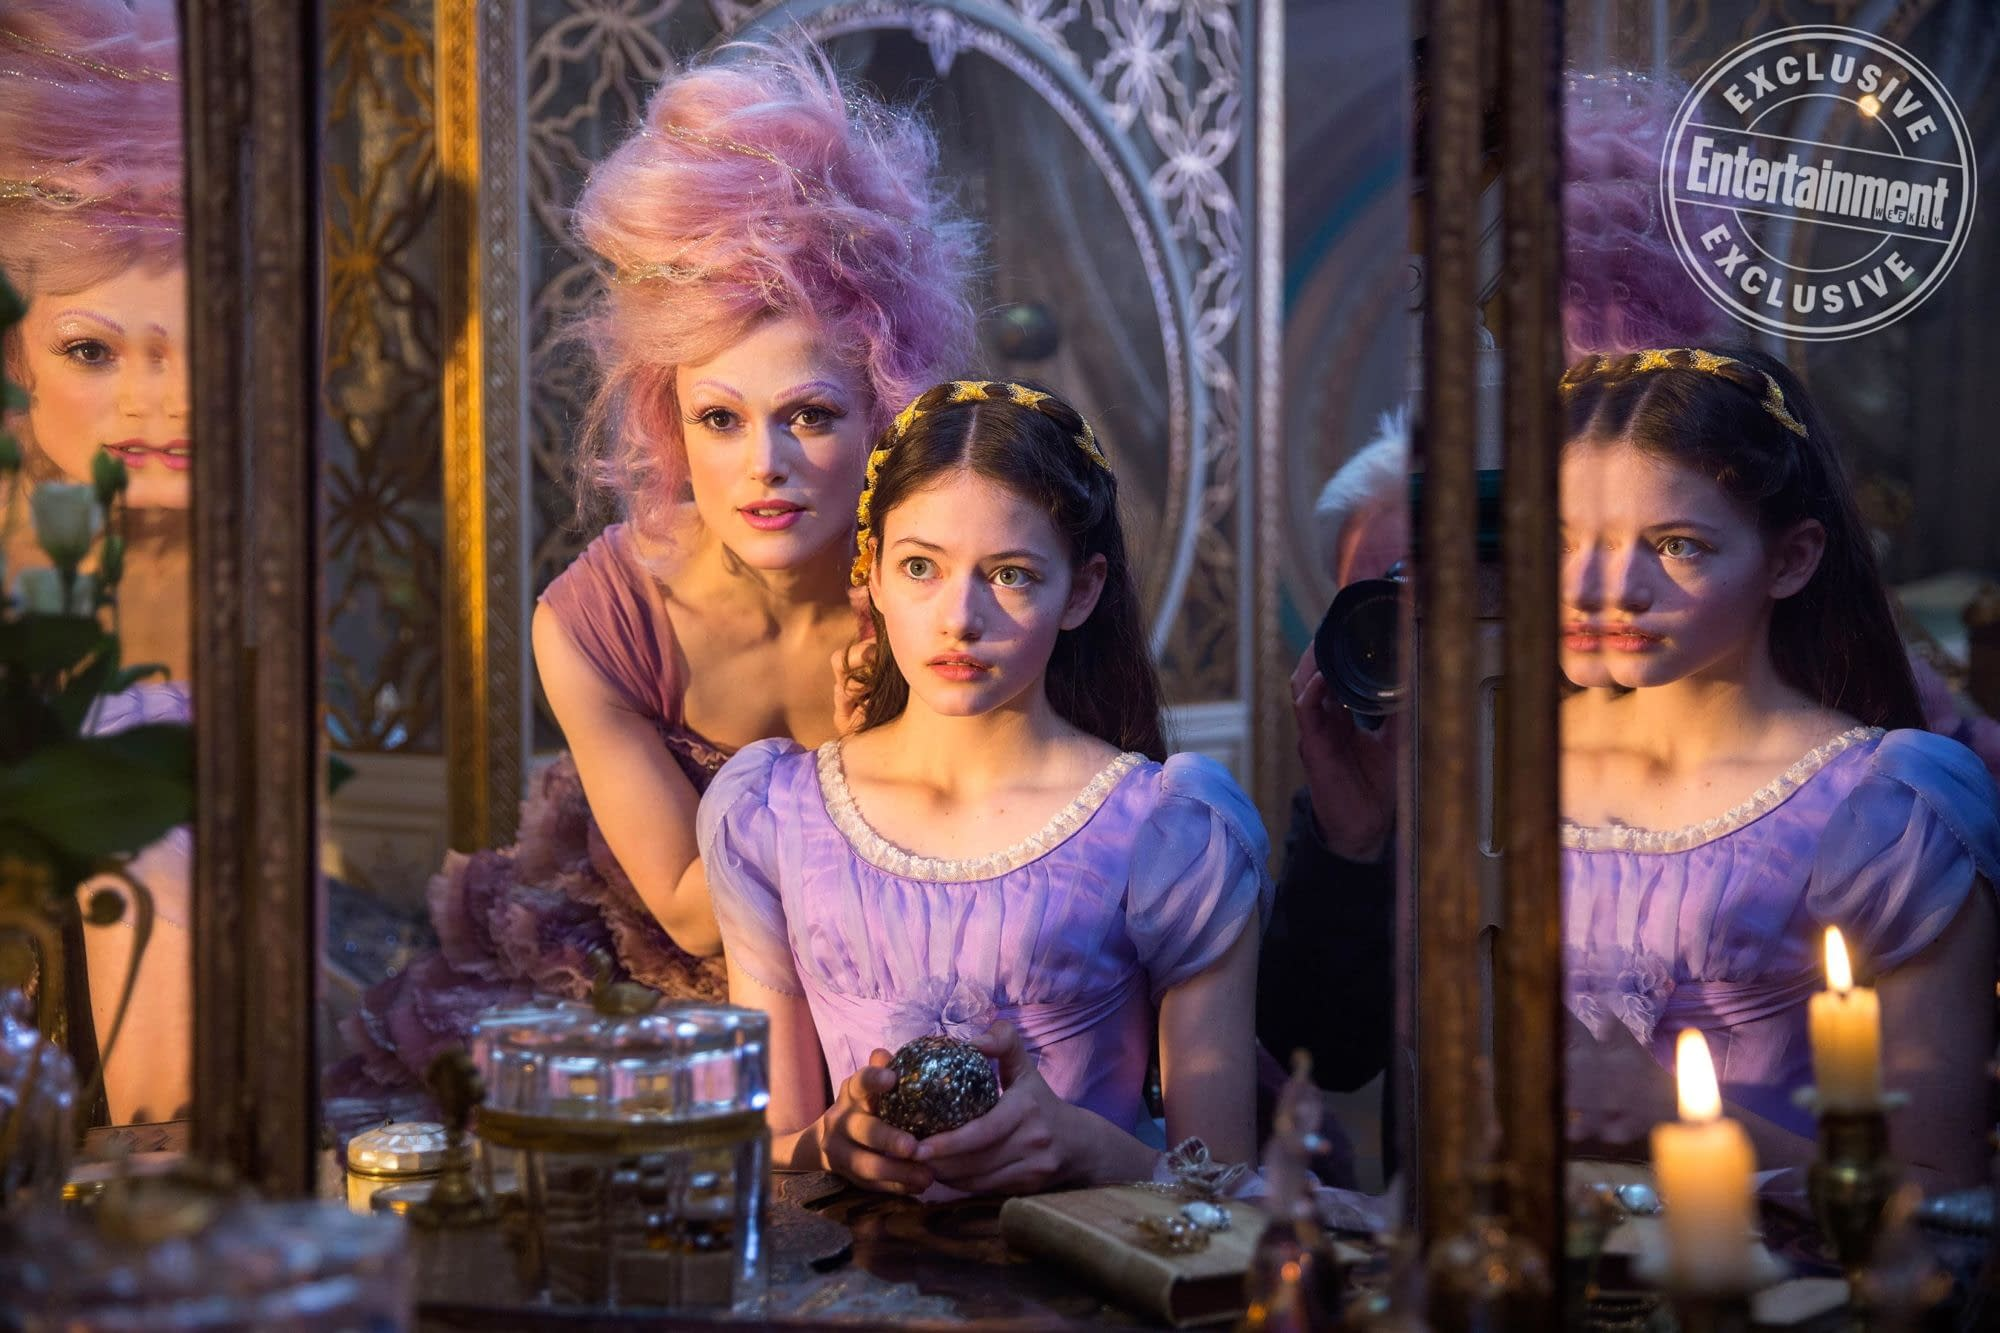 Clara and the Sugar Plum Fairy in New Image from The Nutcracker and the Four Realms